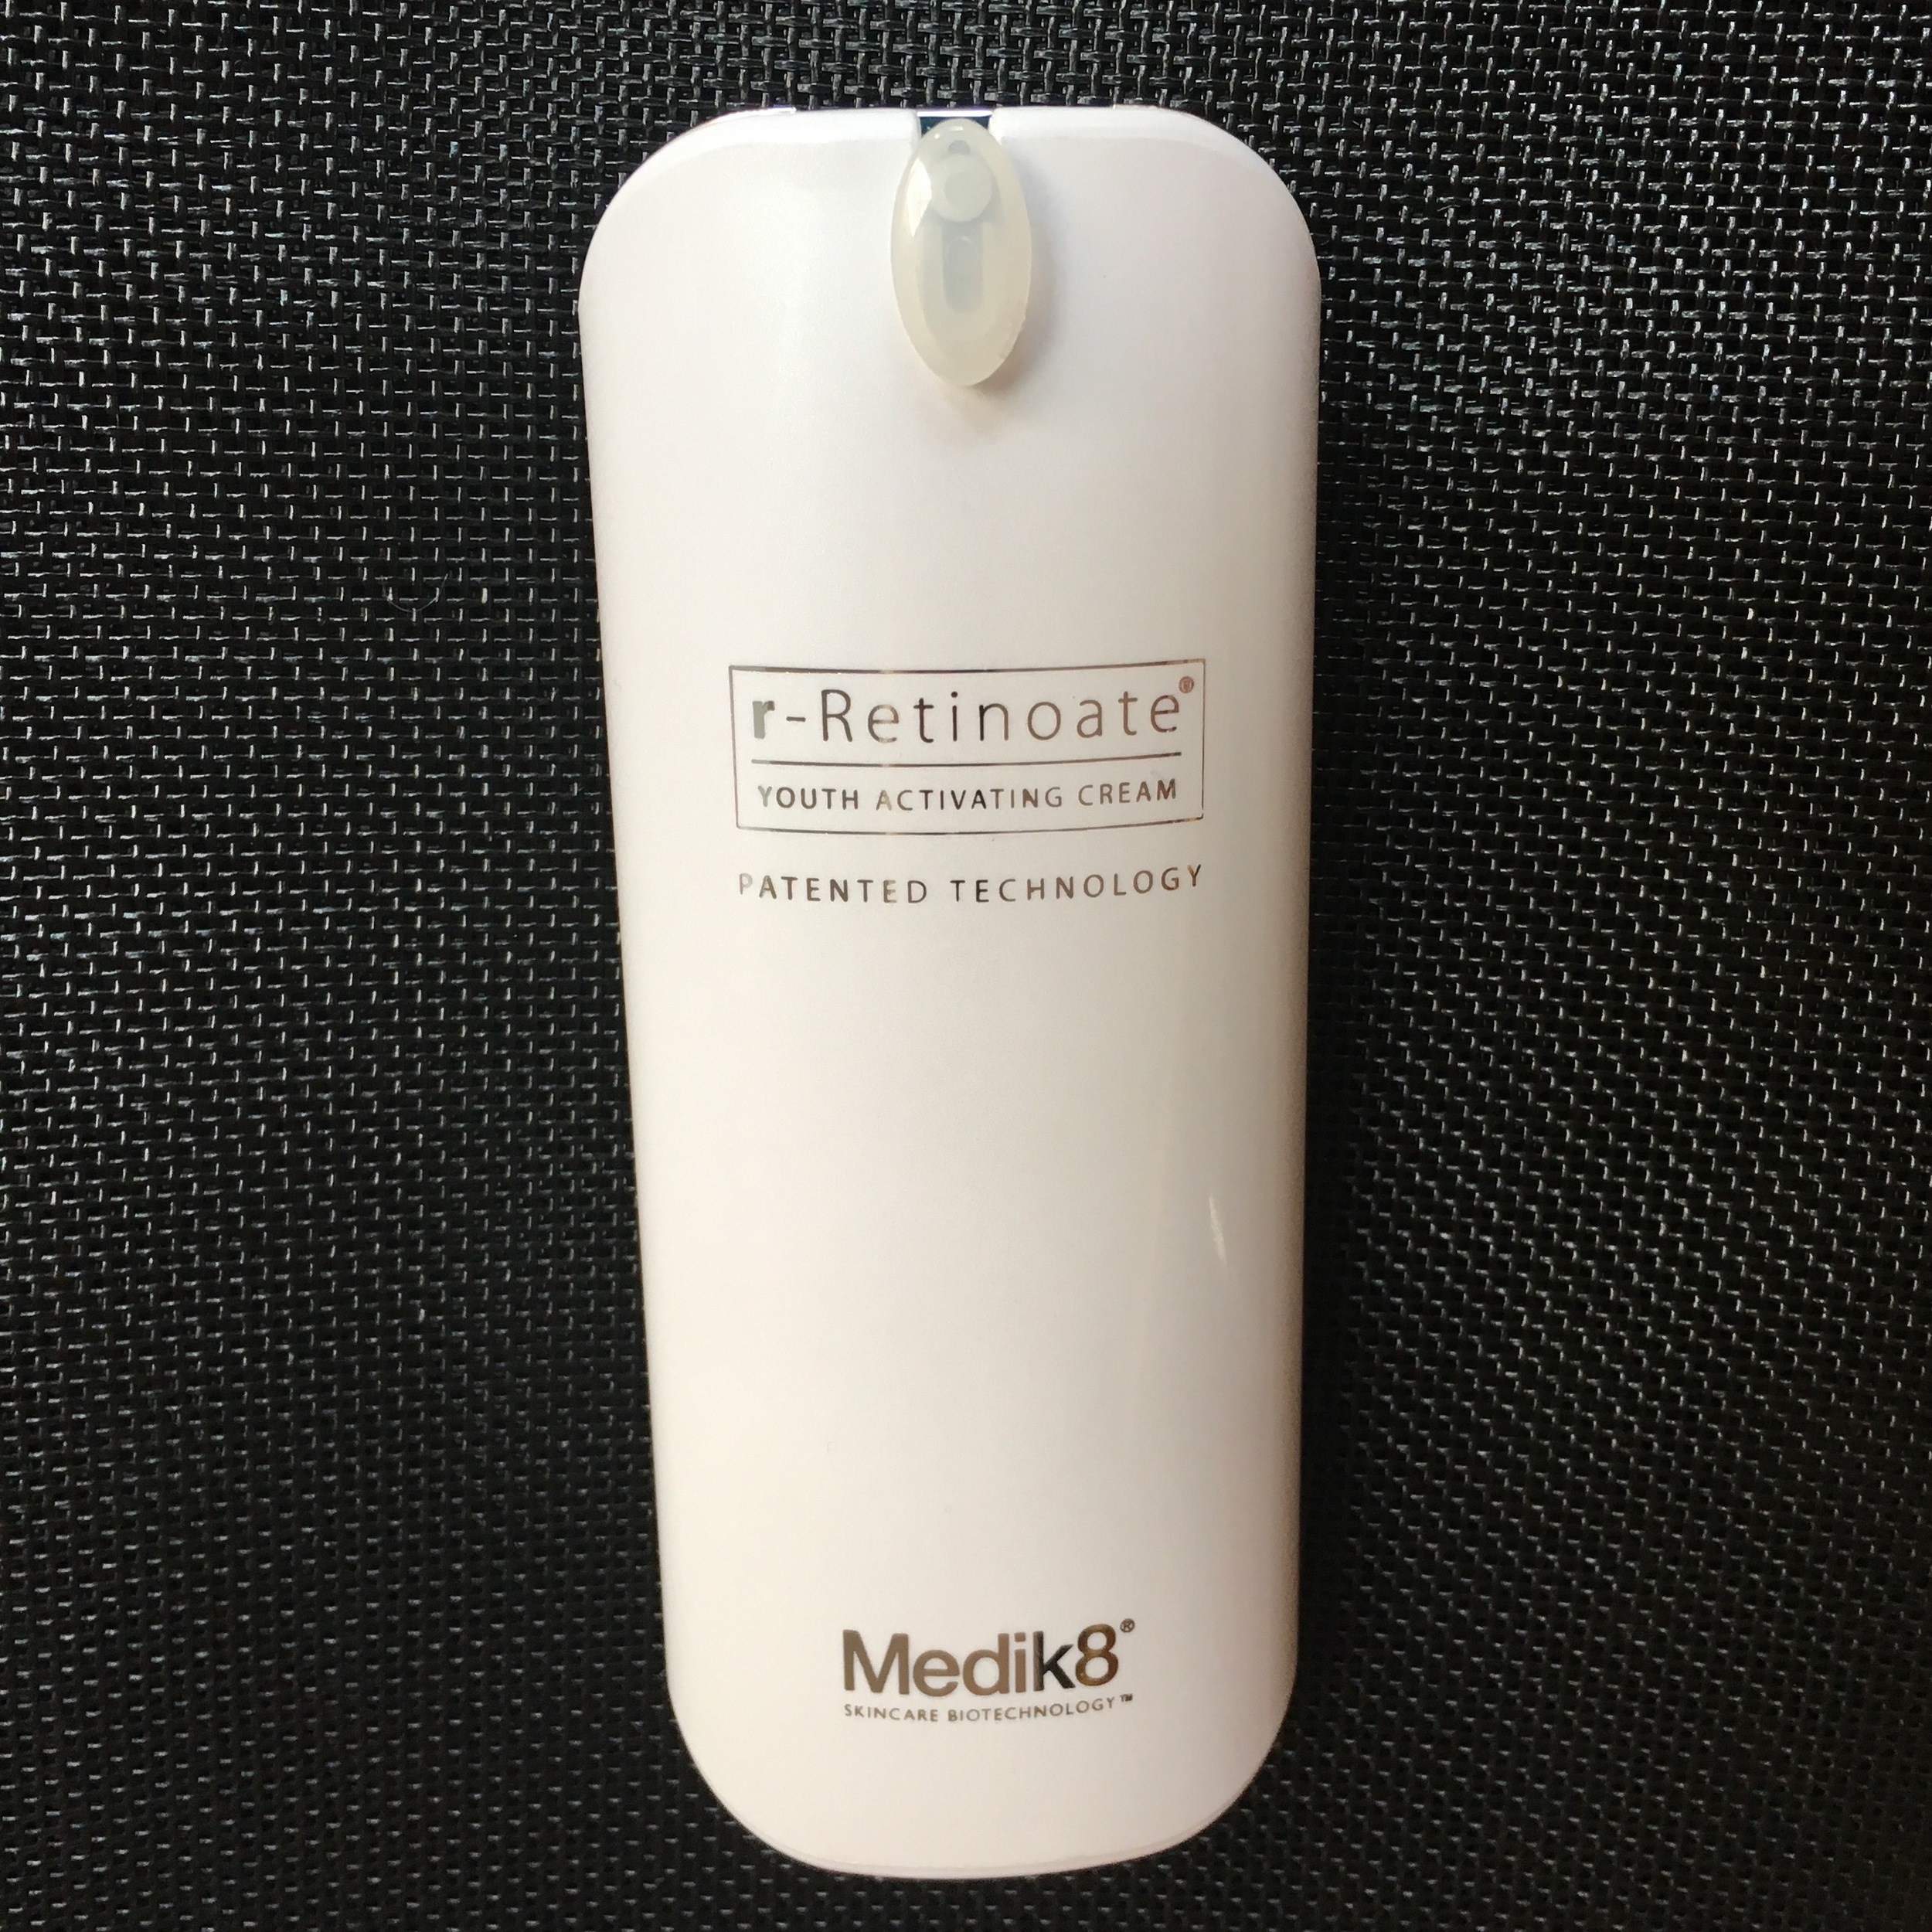 A game-changing product: r-Retinoate, from Medik8